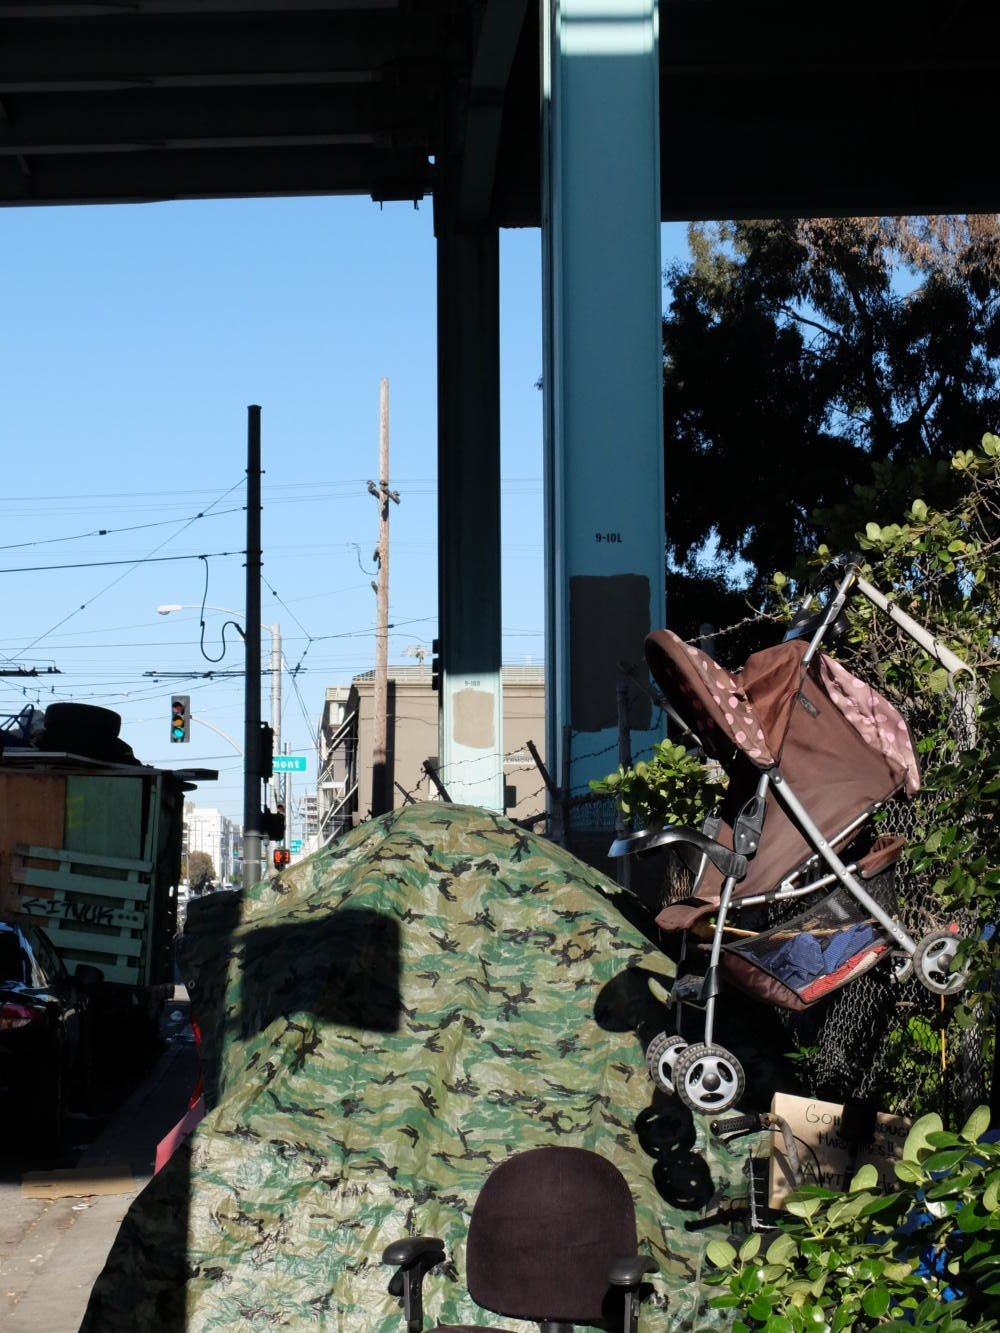 Photo of a homeless encampment by Olivia Meehan, Head Photographer.